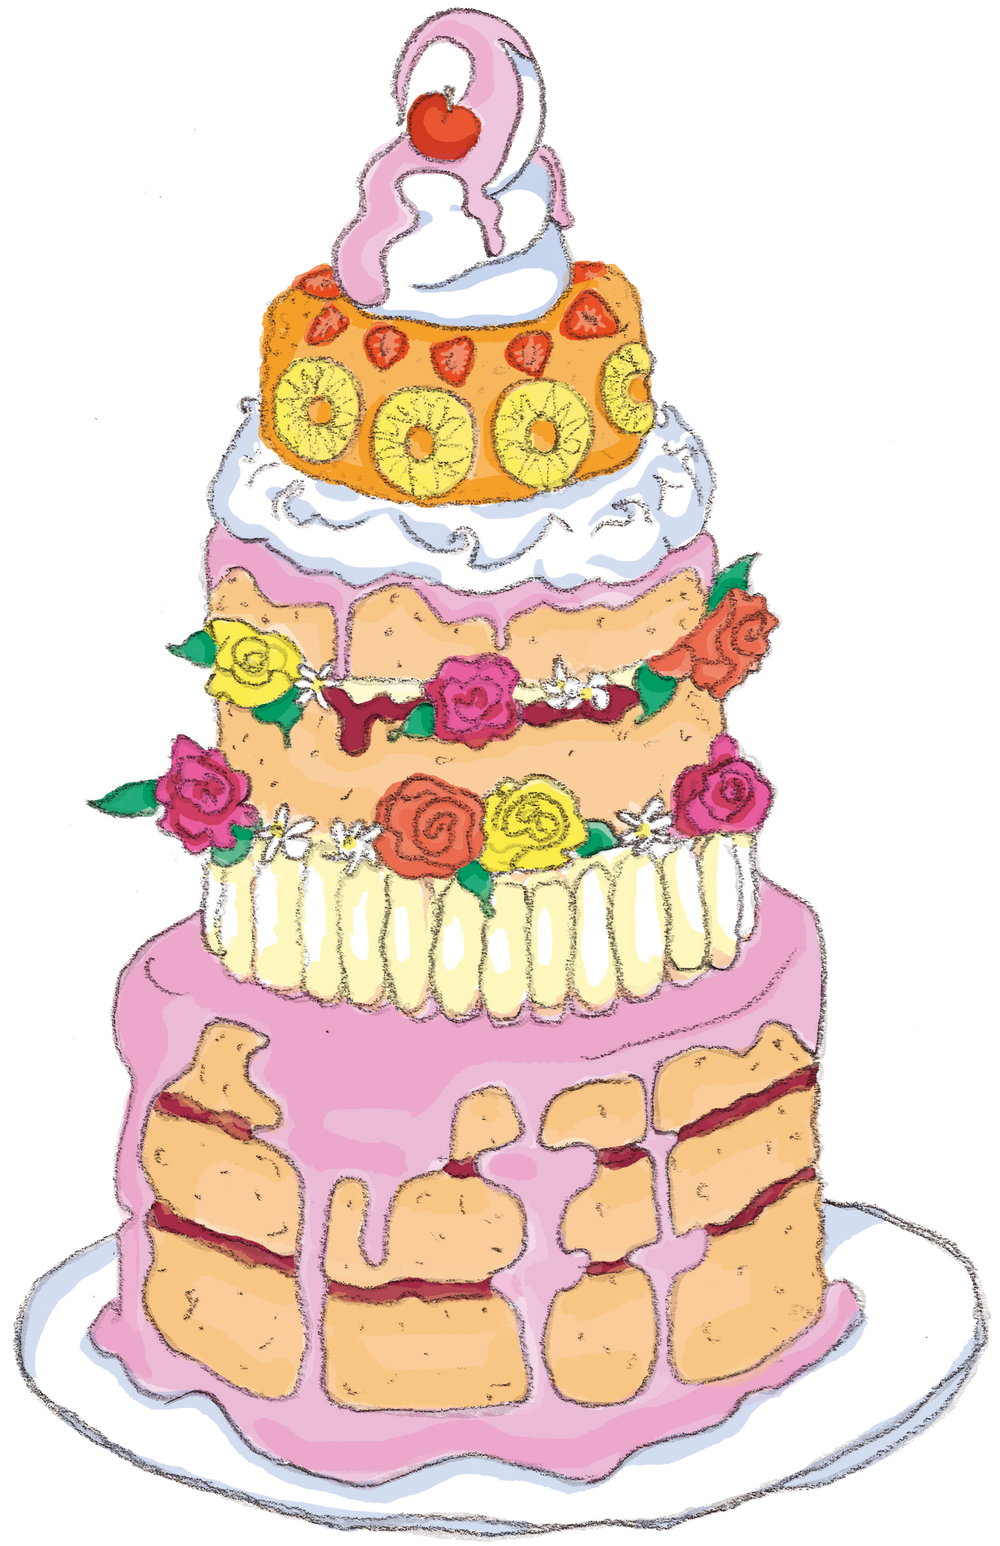 Celebratory cake for the Queen's visit to the school in the children's book I was working on back in 2016.